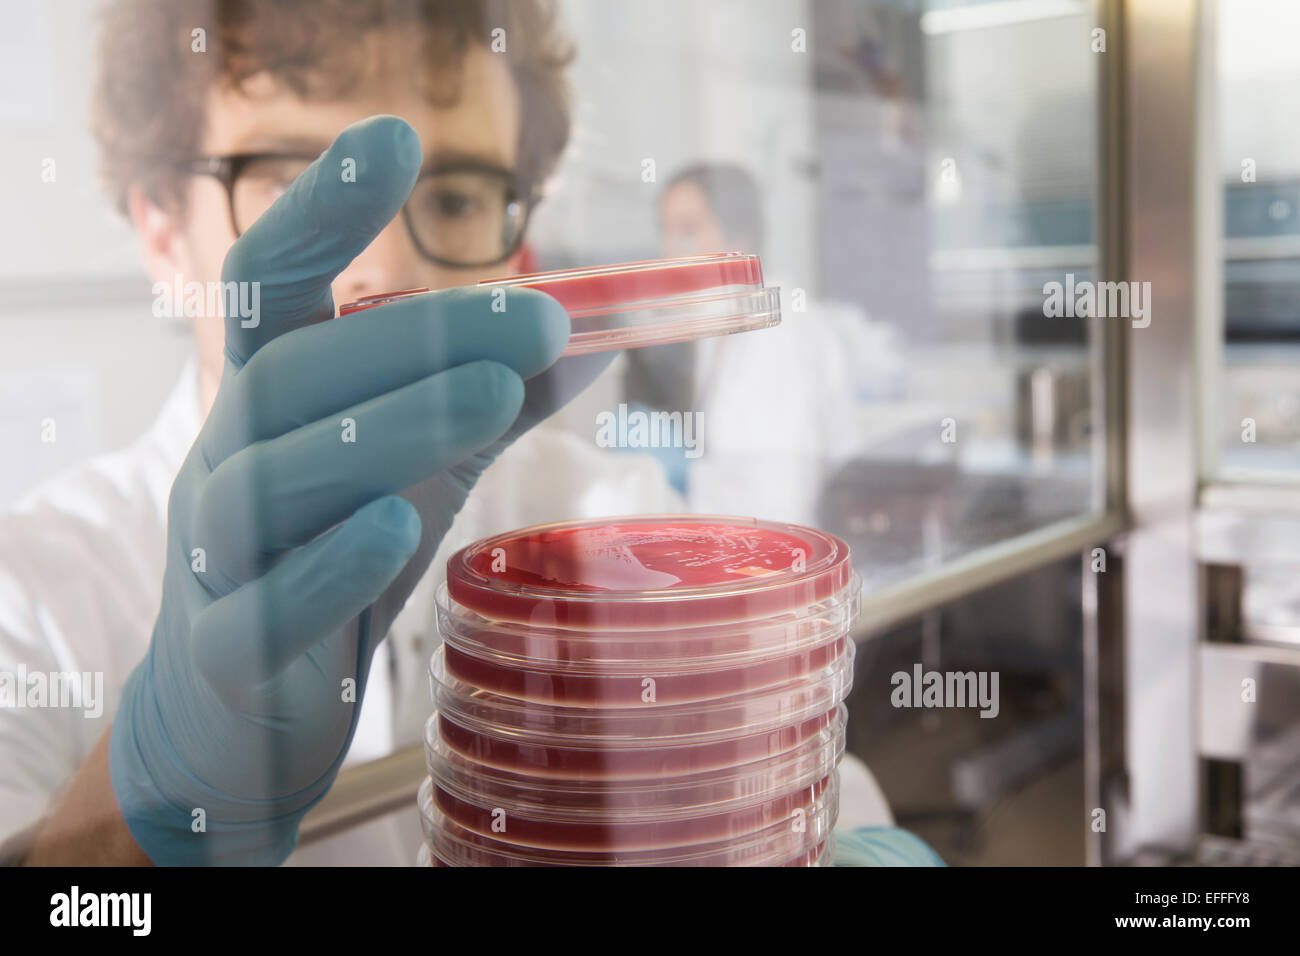 Scientist working with bacteria cultures in laboratory - Stock Image